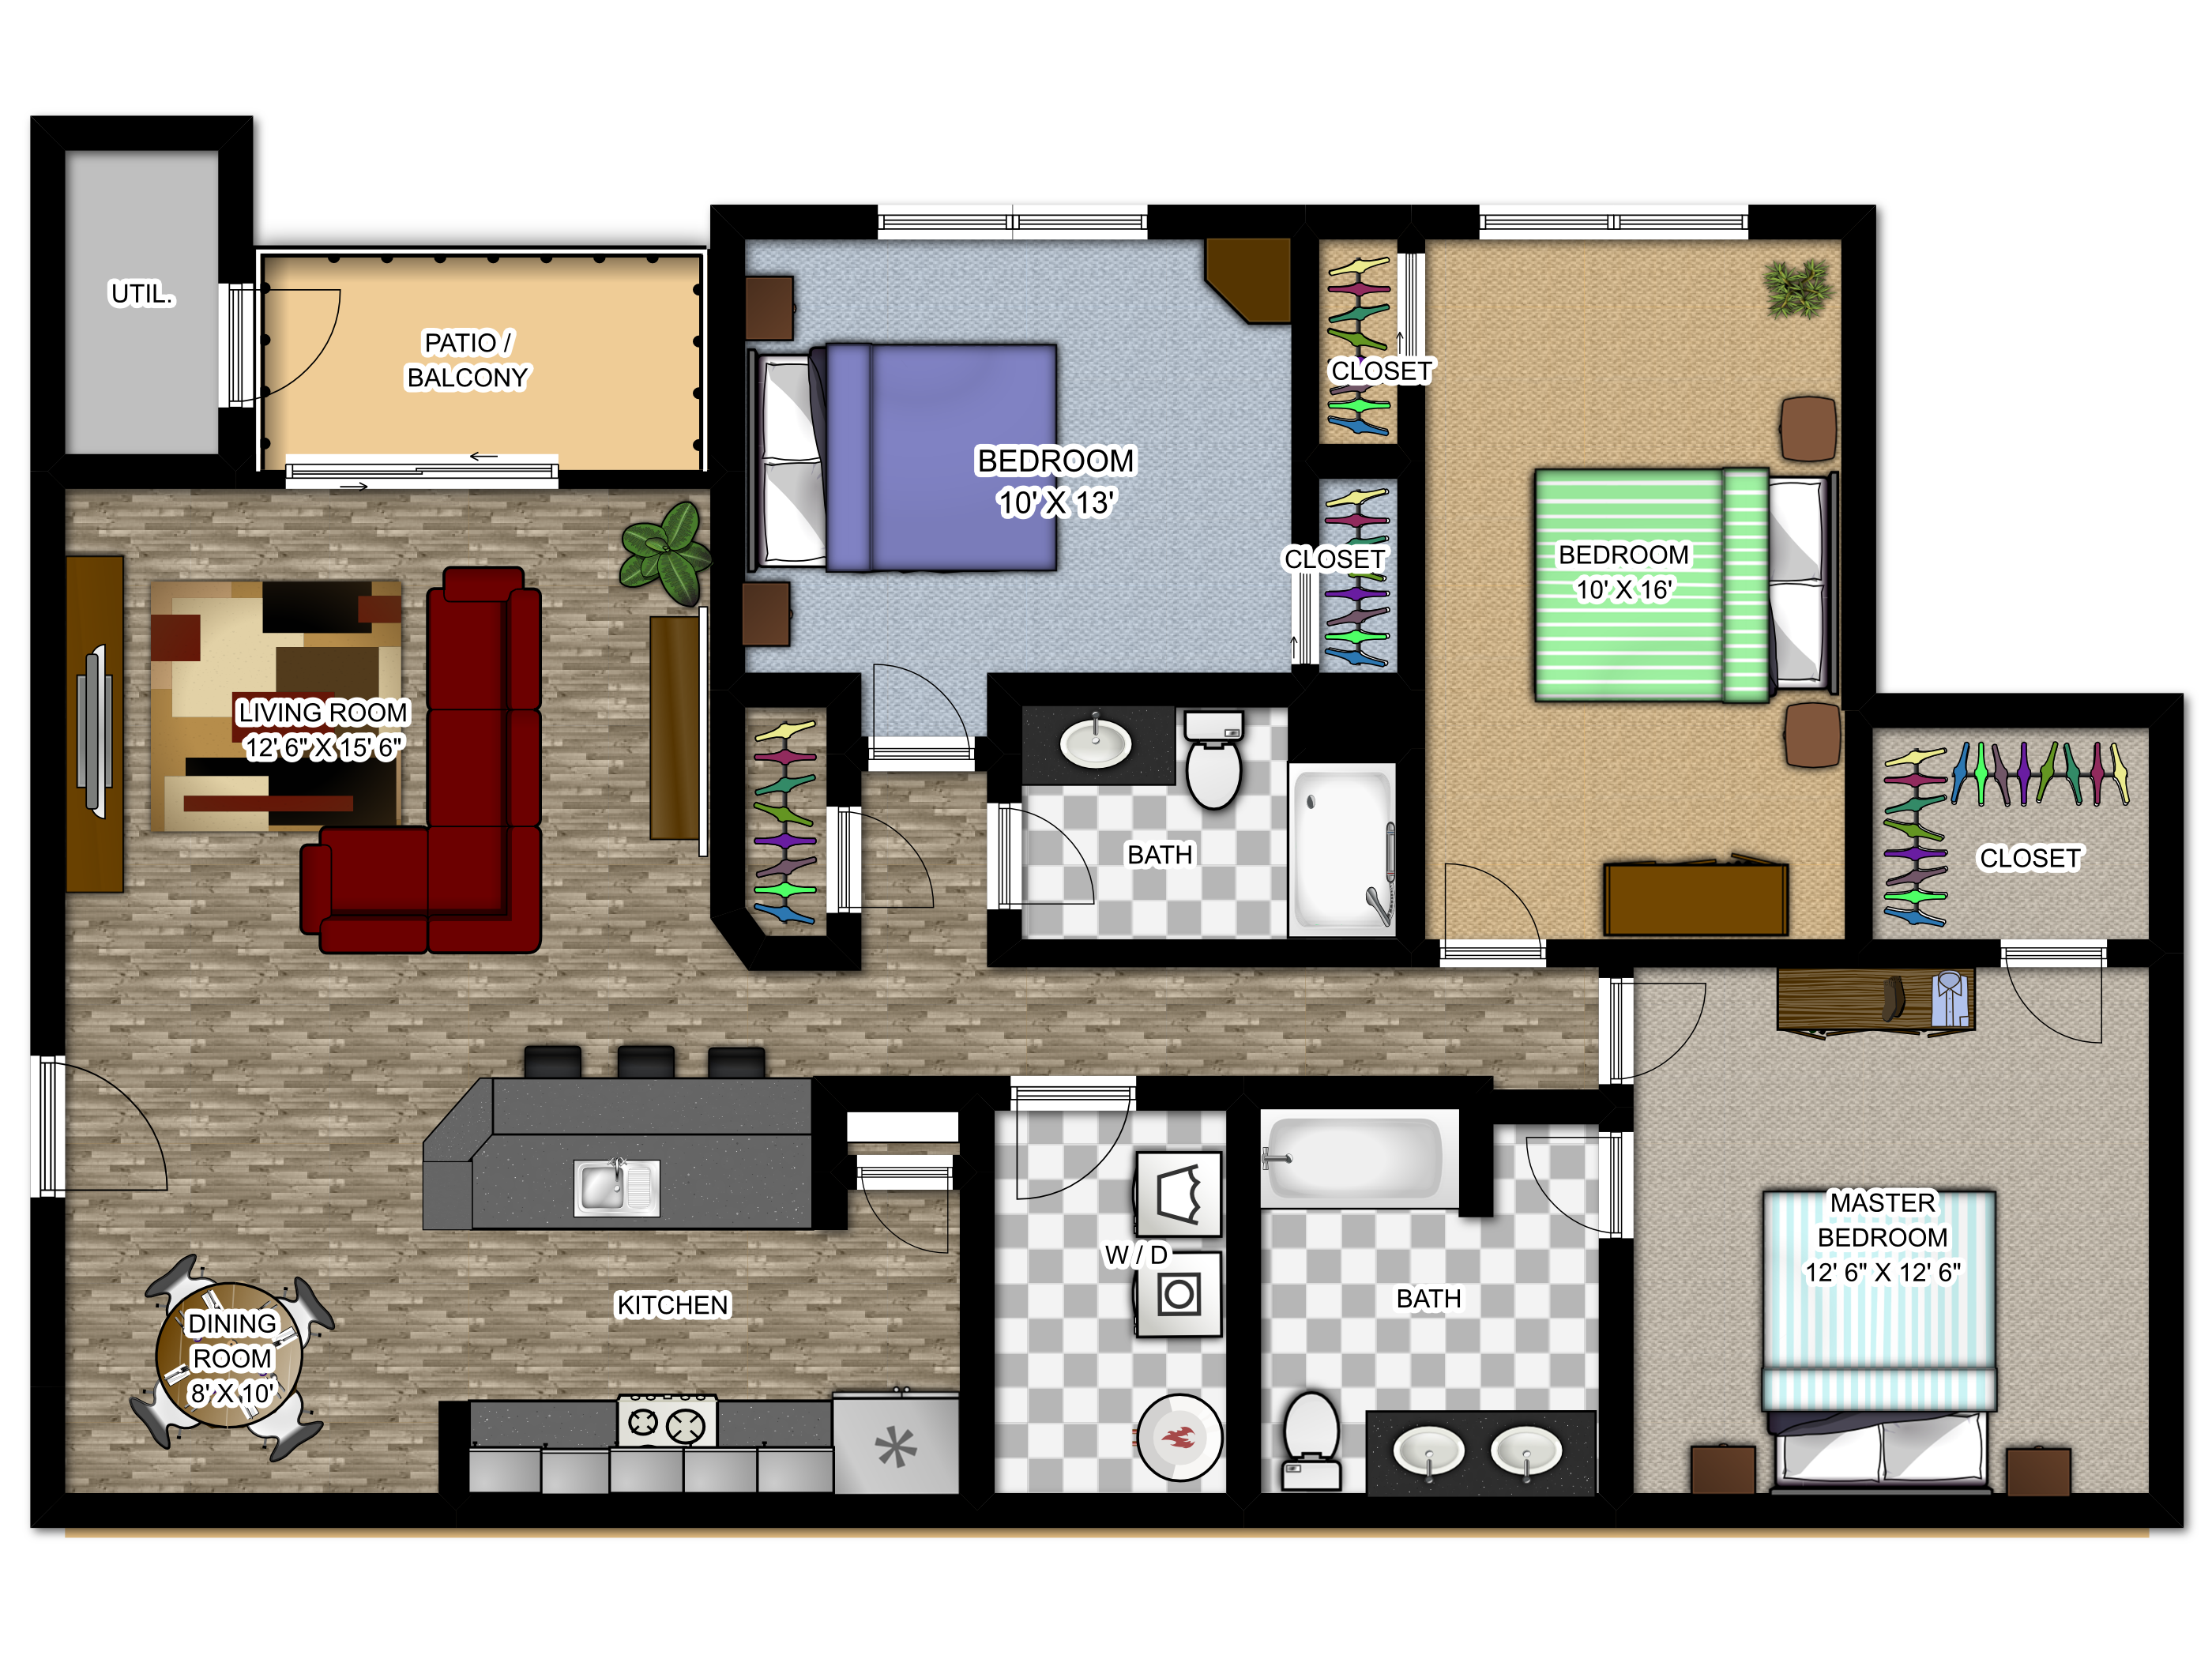 Meadowood Apartments Floor Plans - The Cahteau